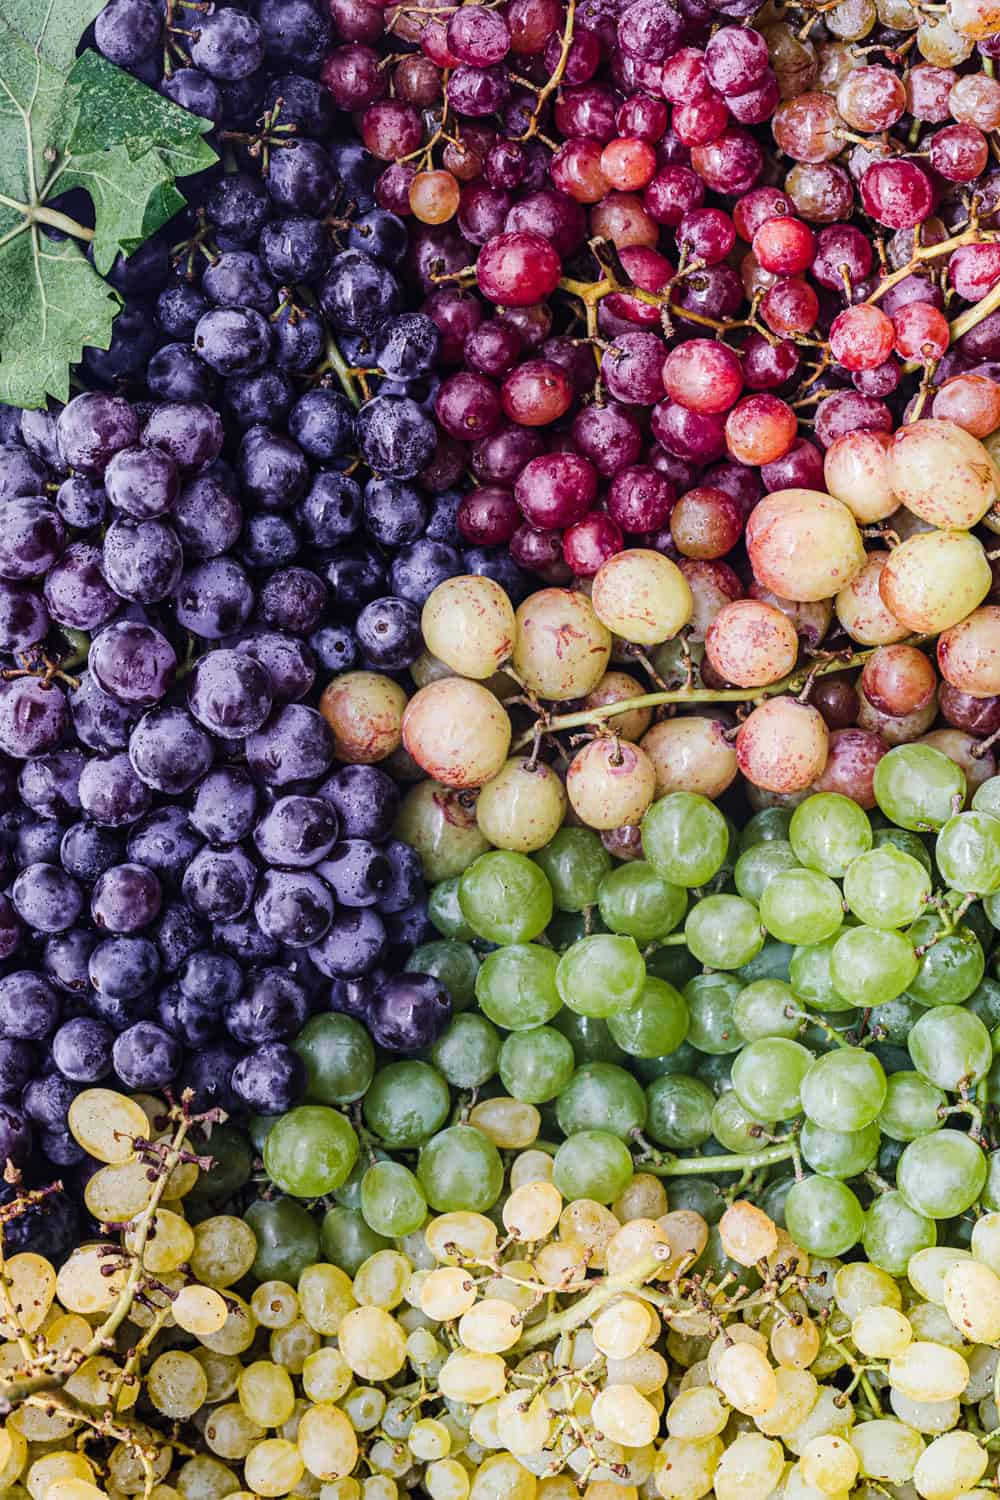 Many varieties and colors of grapes on the vine taking up the entire frame; overhead shot.